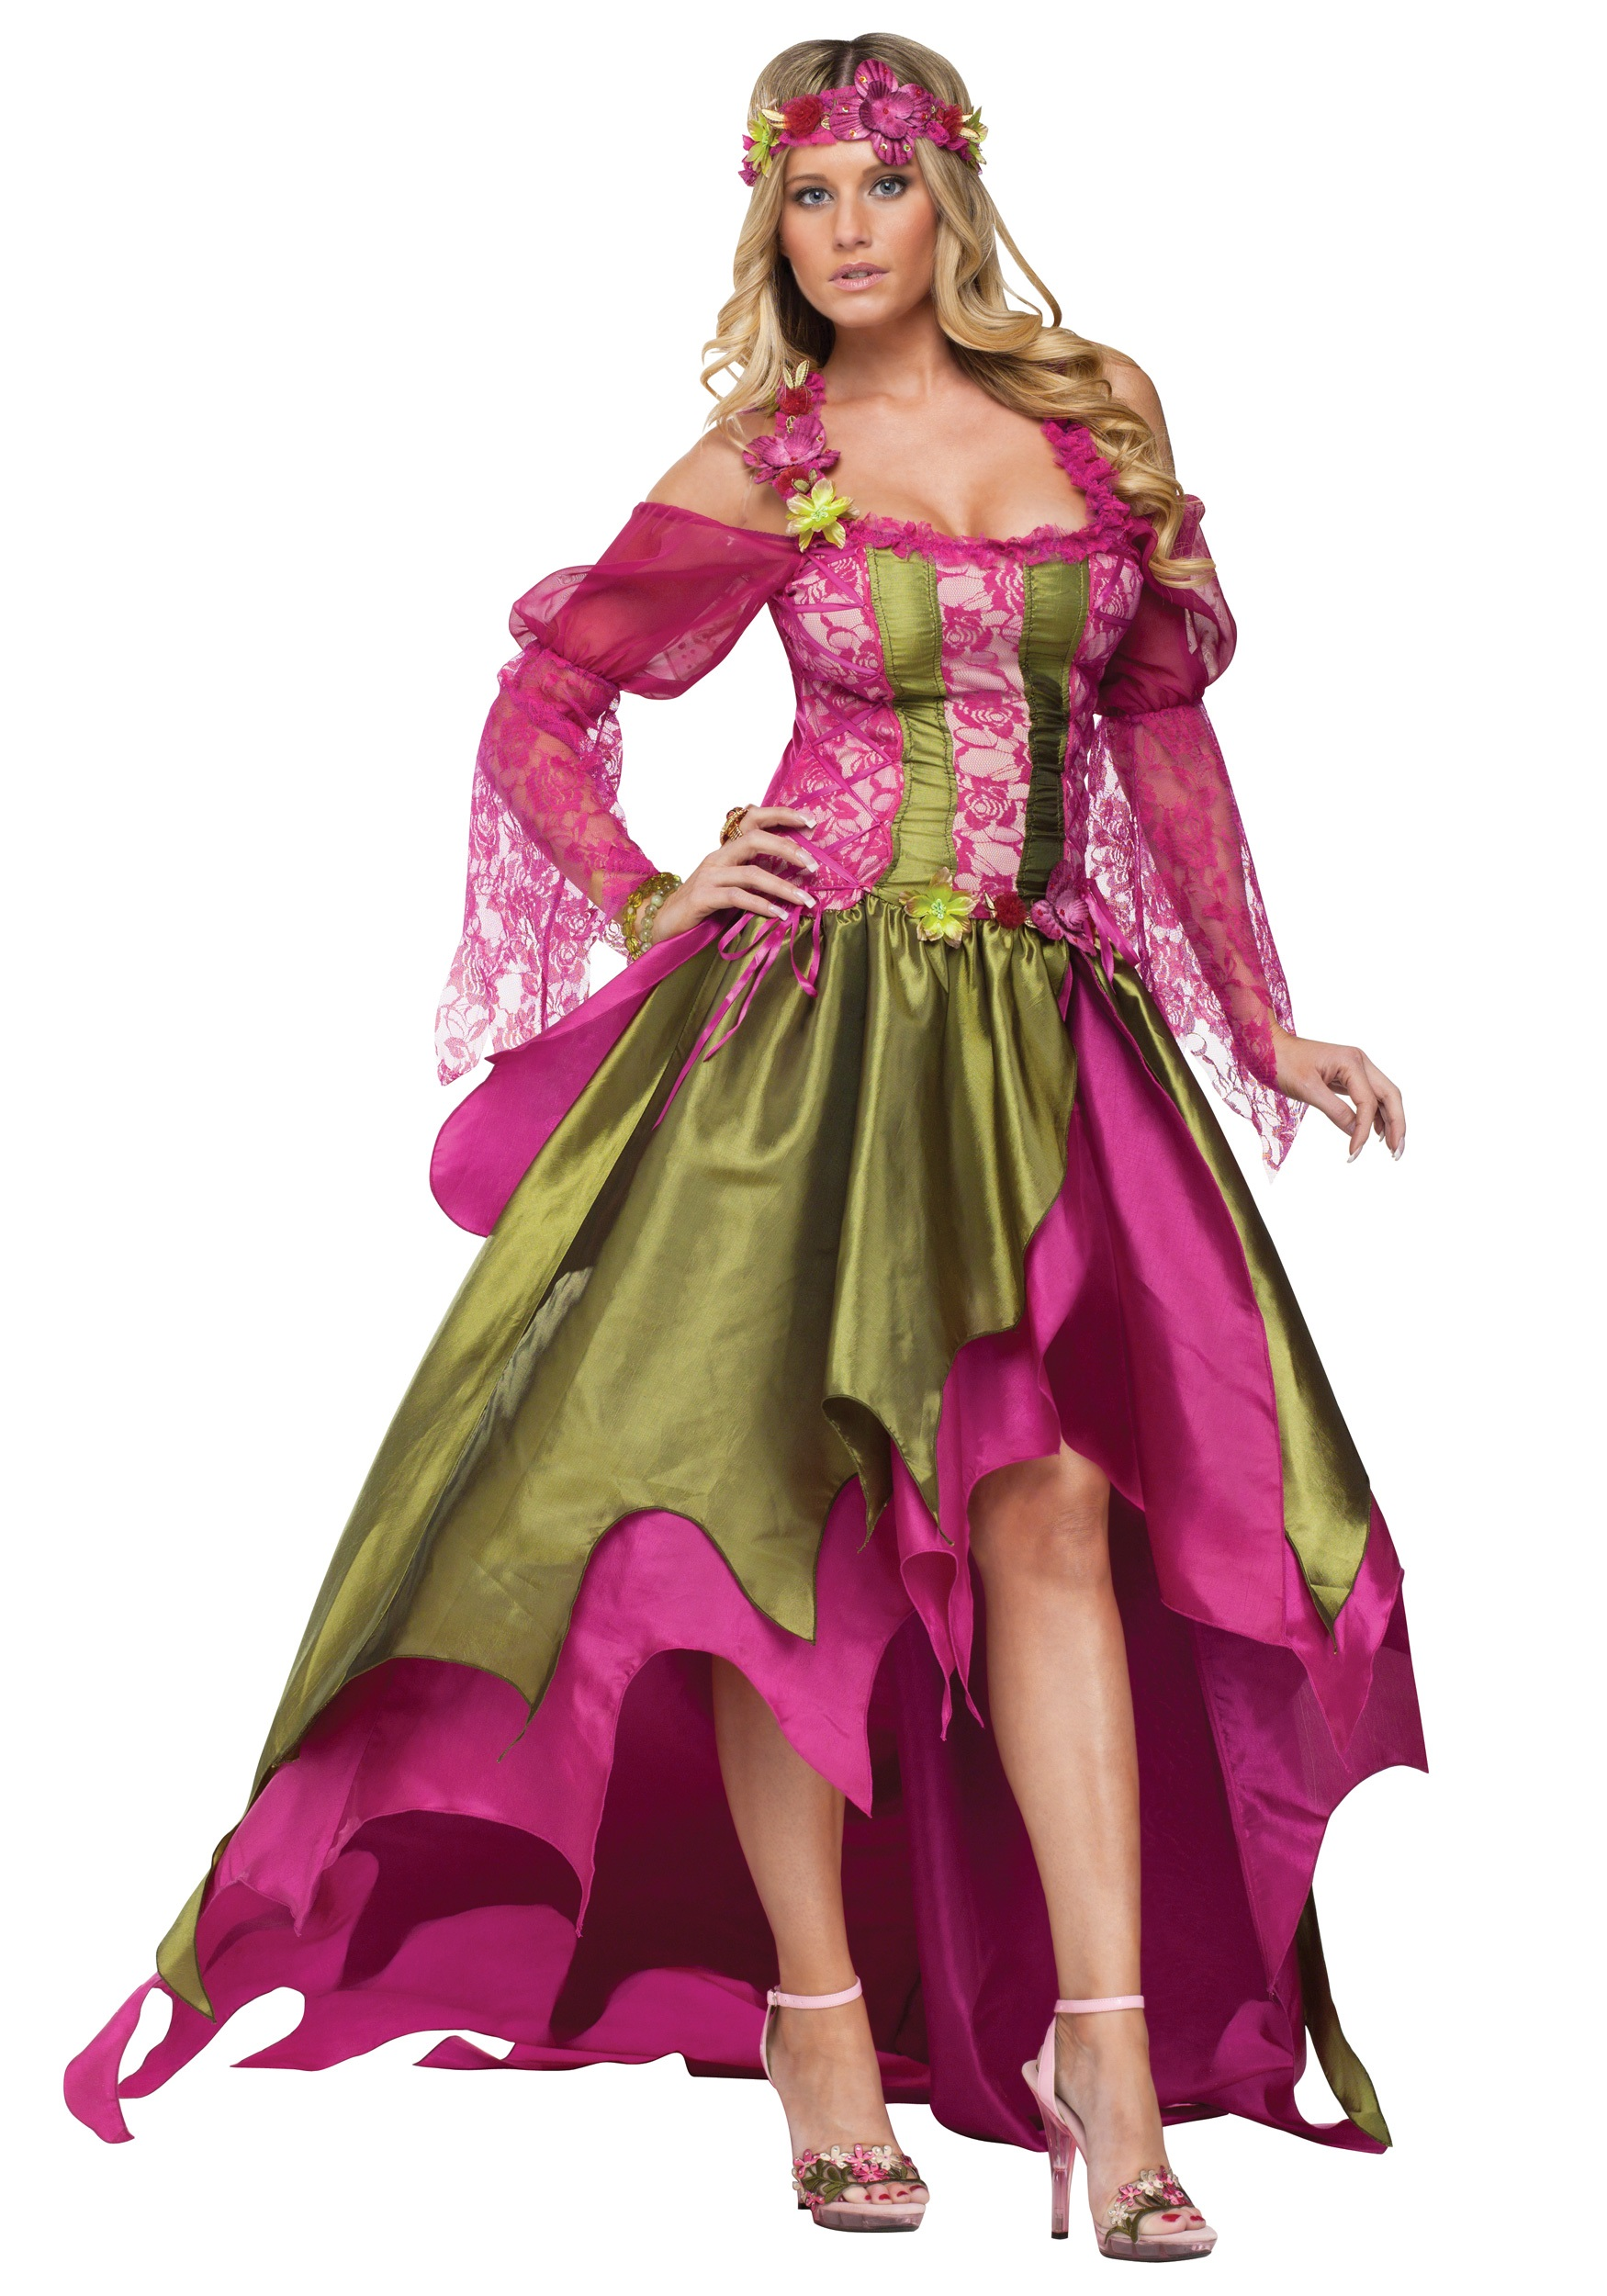 Garden Fairy Costume Fairy Costumes For Women Renaissance Costumes